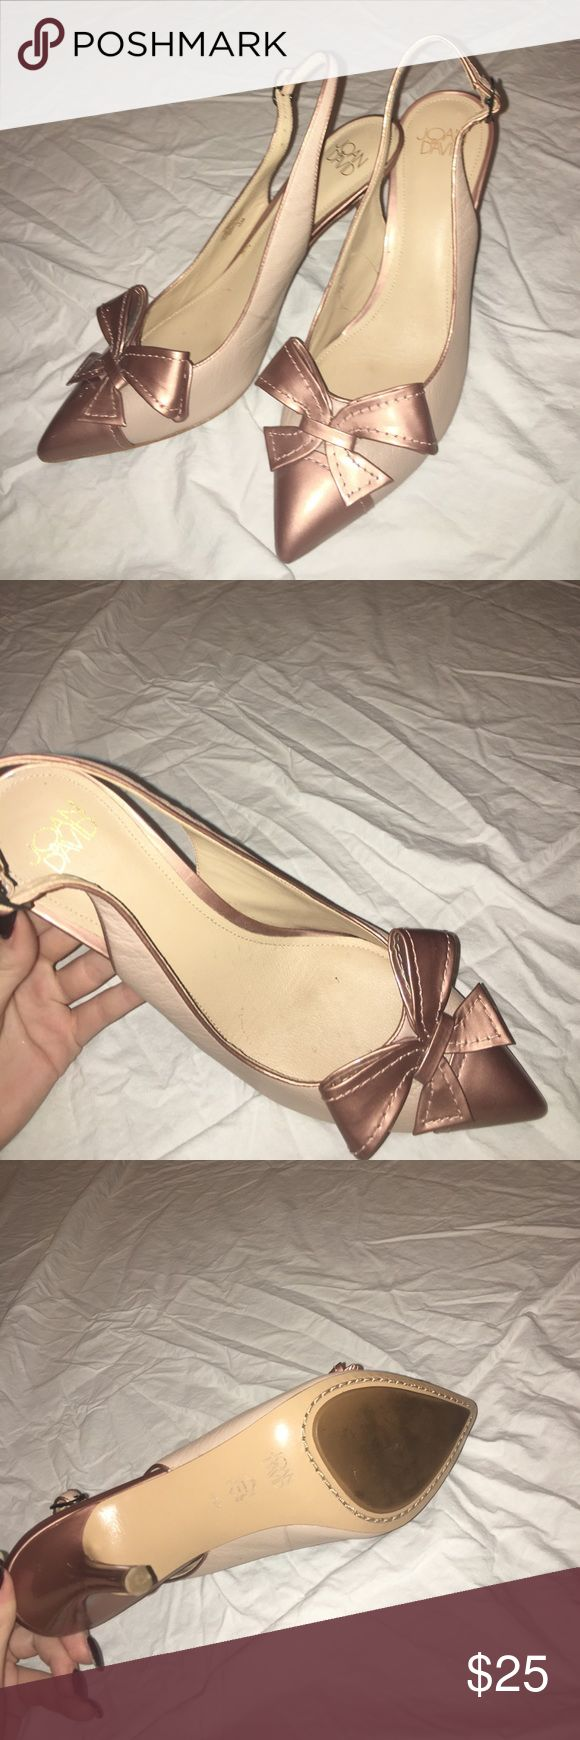 Joan & David nude and rose gold heels Joan & David nude heels with rose gold detailing. brand new, not even a single scuff! Joan & David Shoes Heels